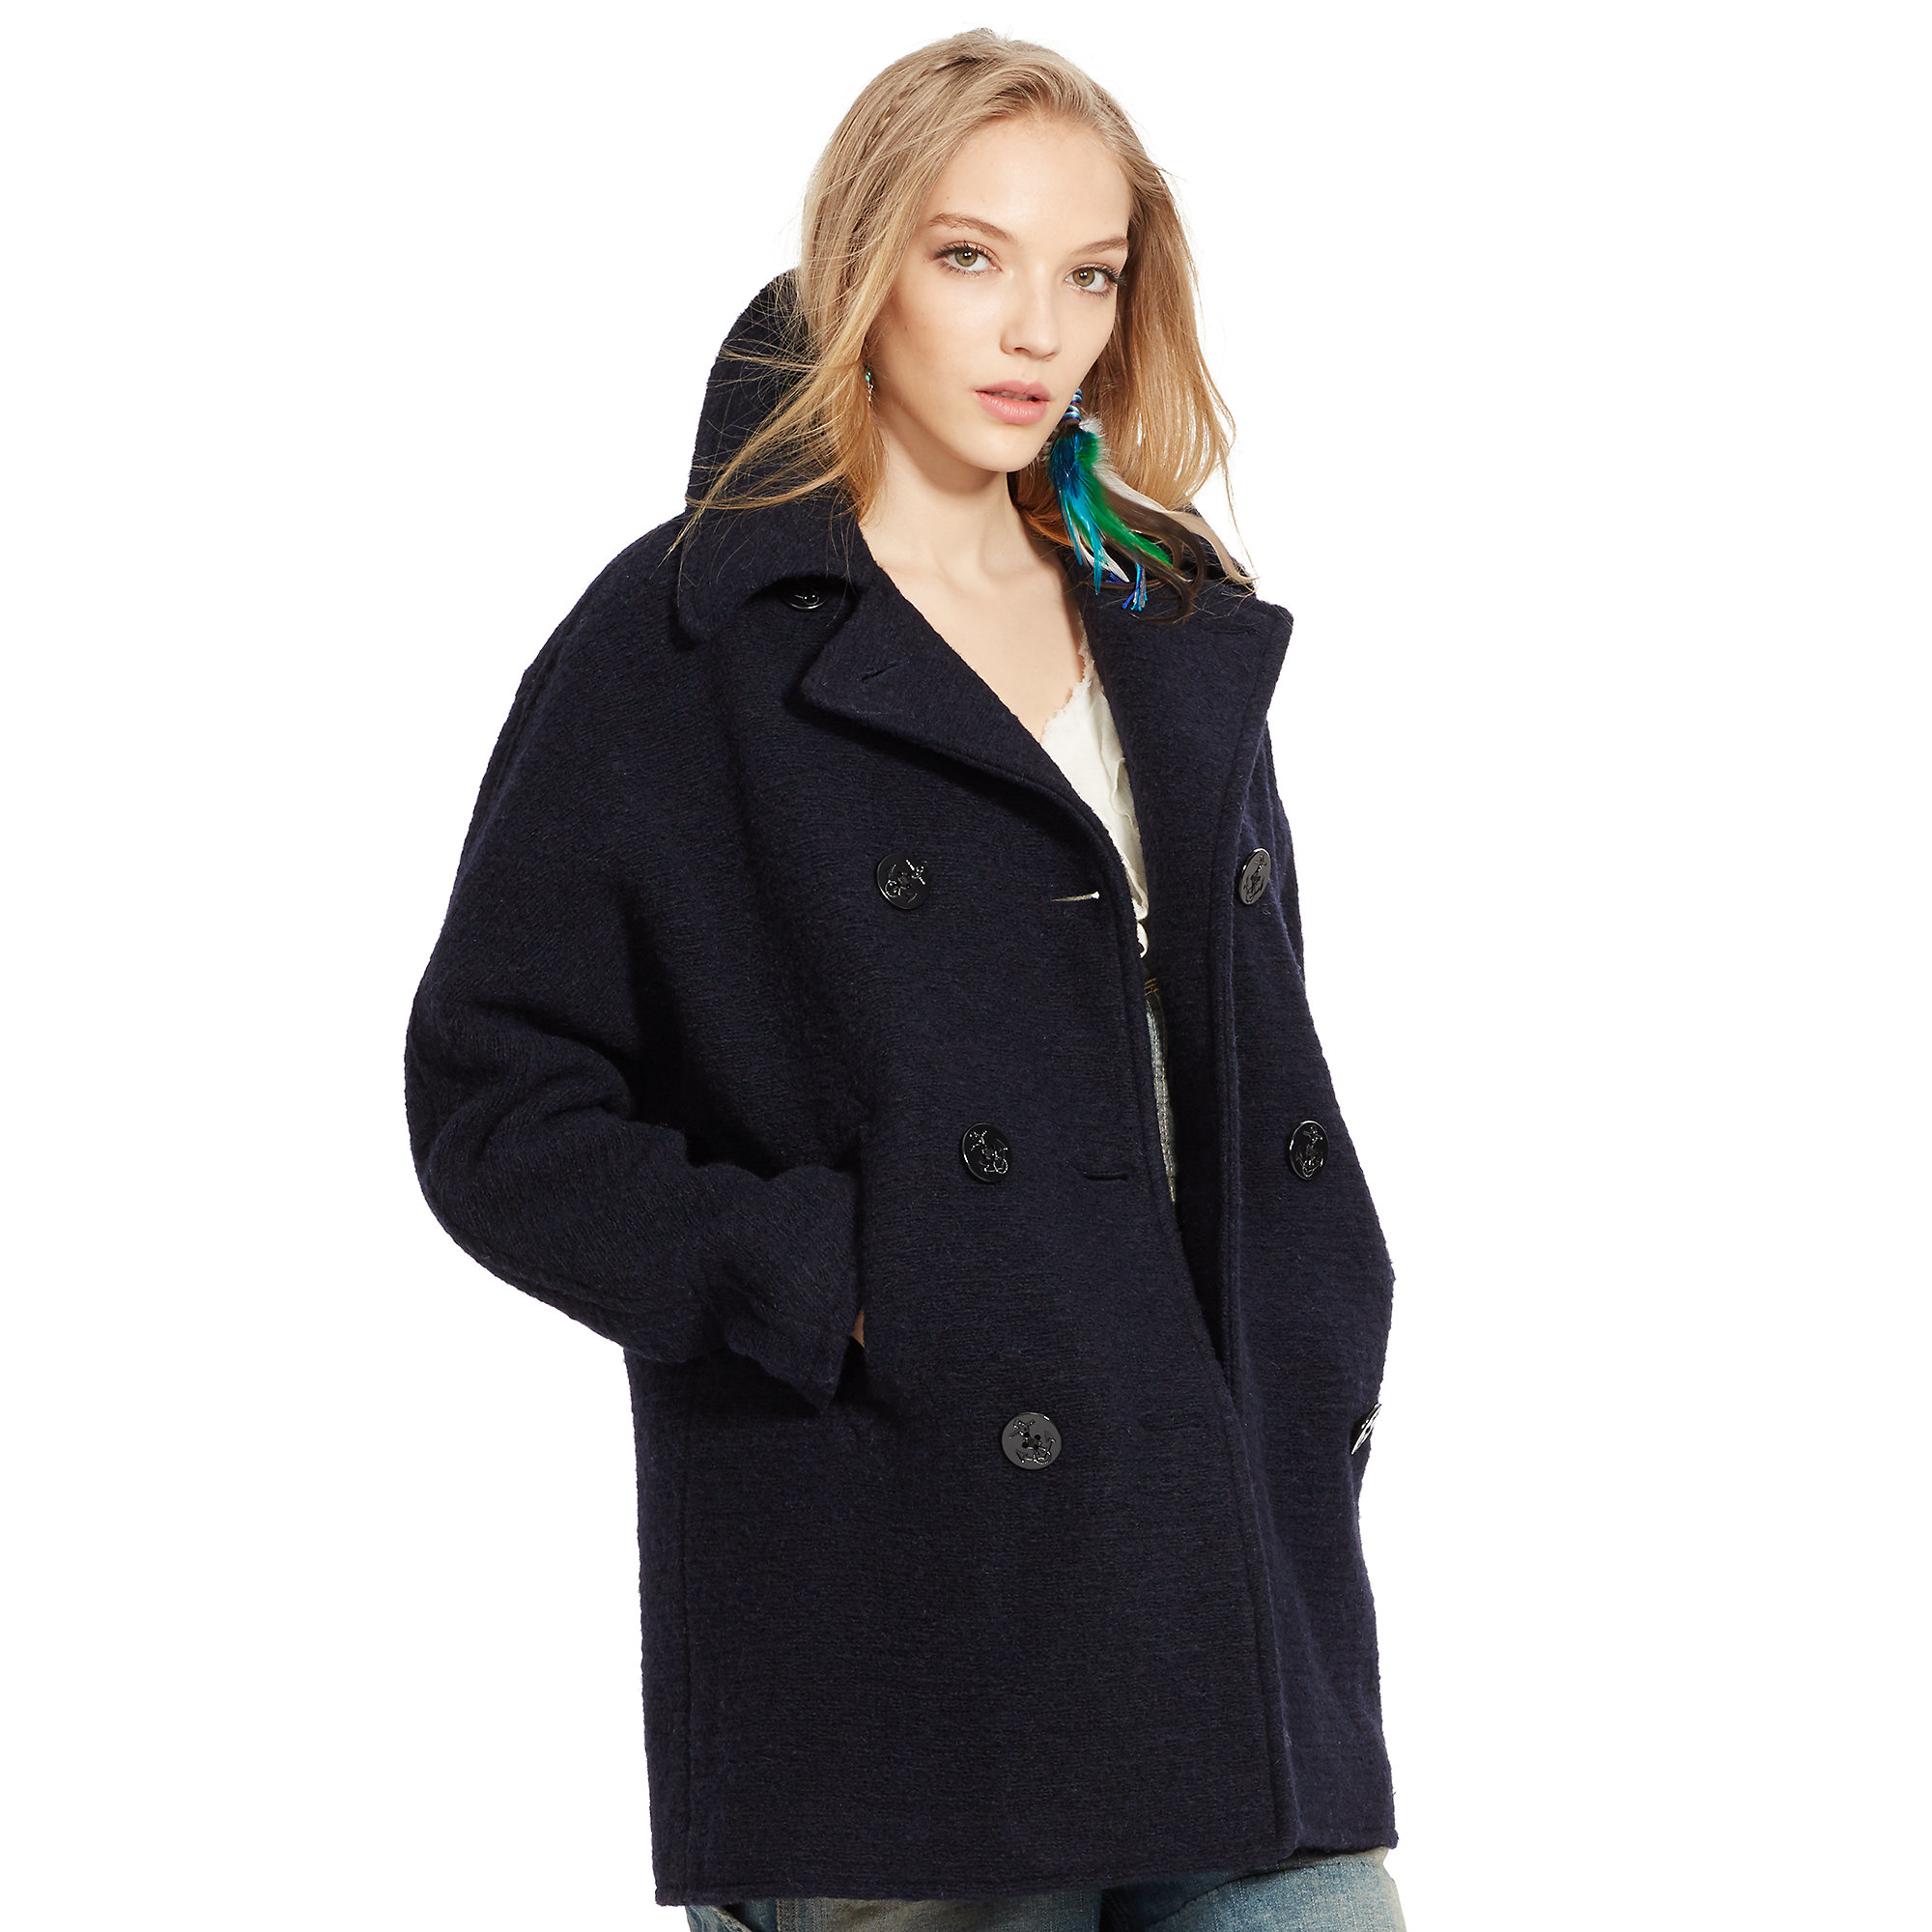 Denim & supply ralph lauren Wool-blend Pea Coat in Blue | Lyst